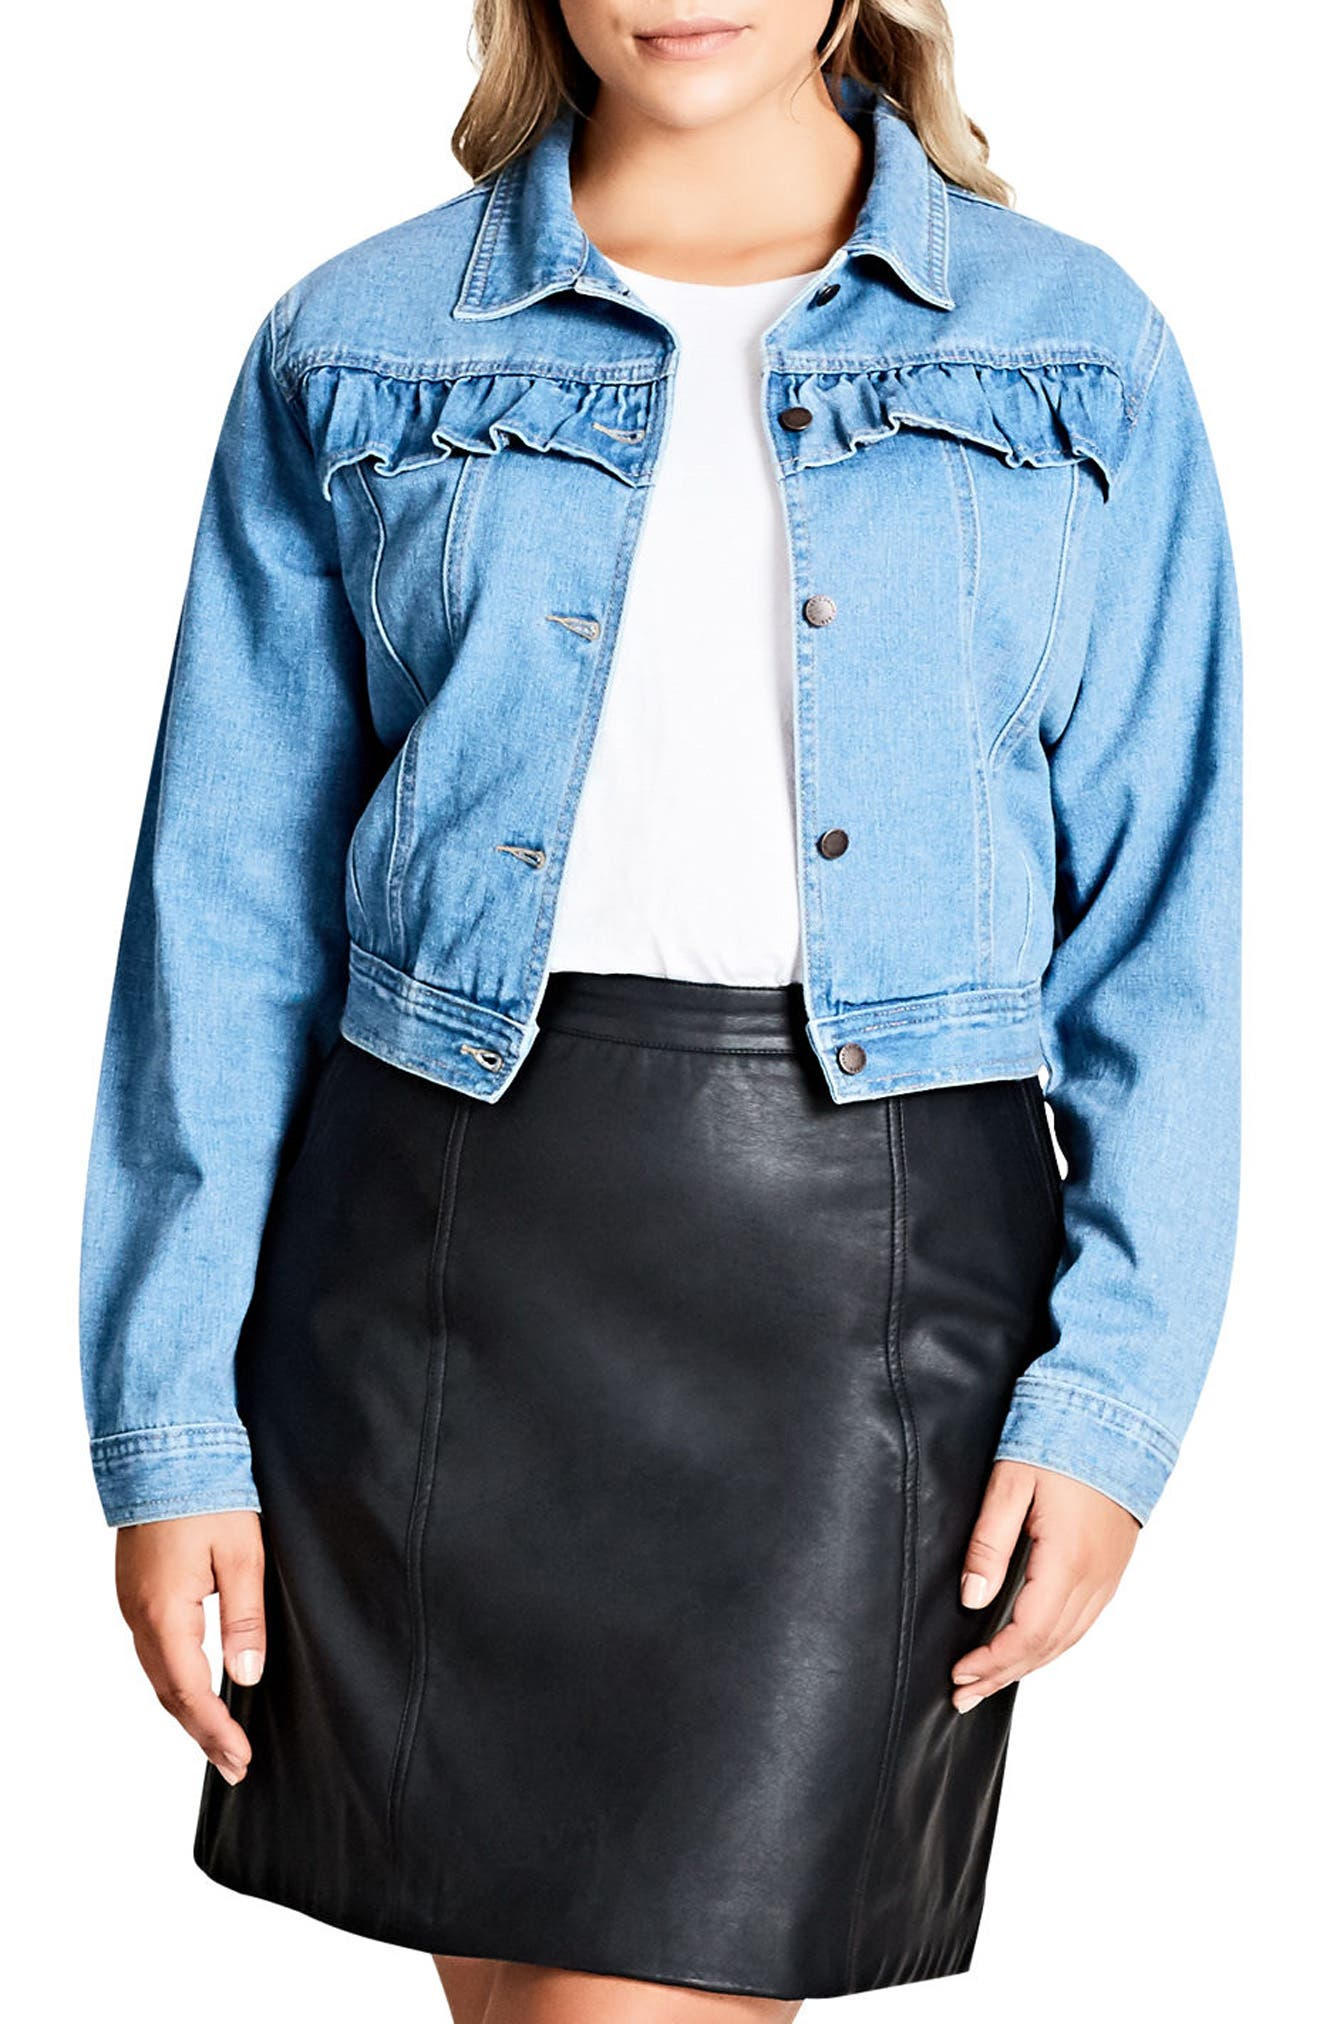 Alternate Image 1 Selected - City Chic Ruffle Denim Jacket (Plus Size)